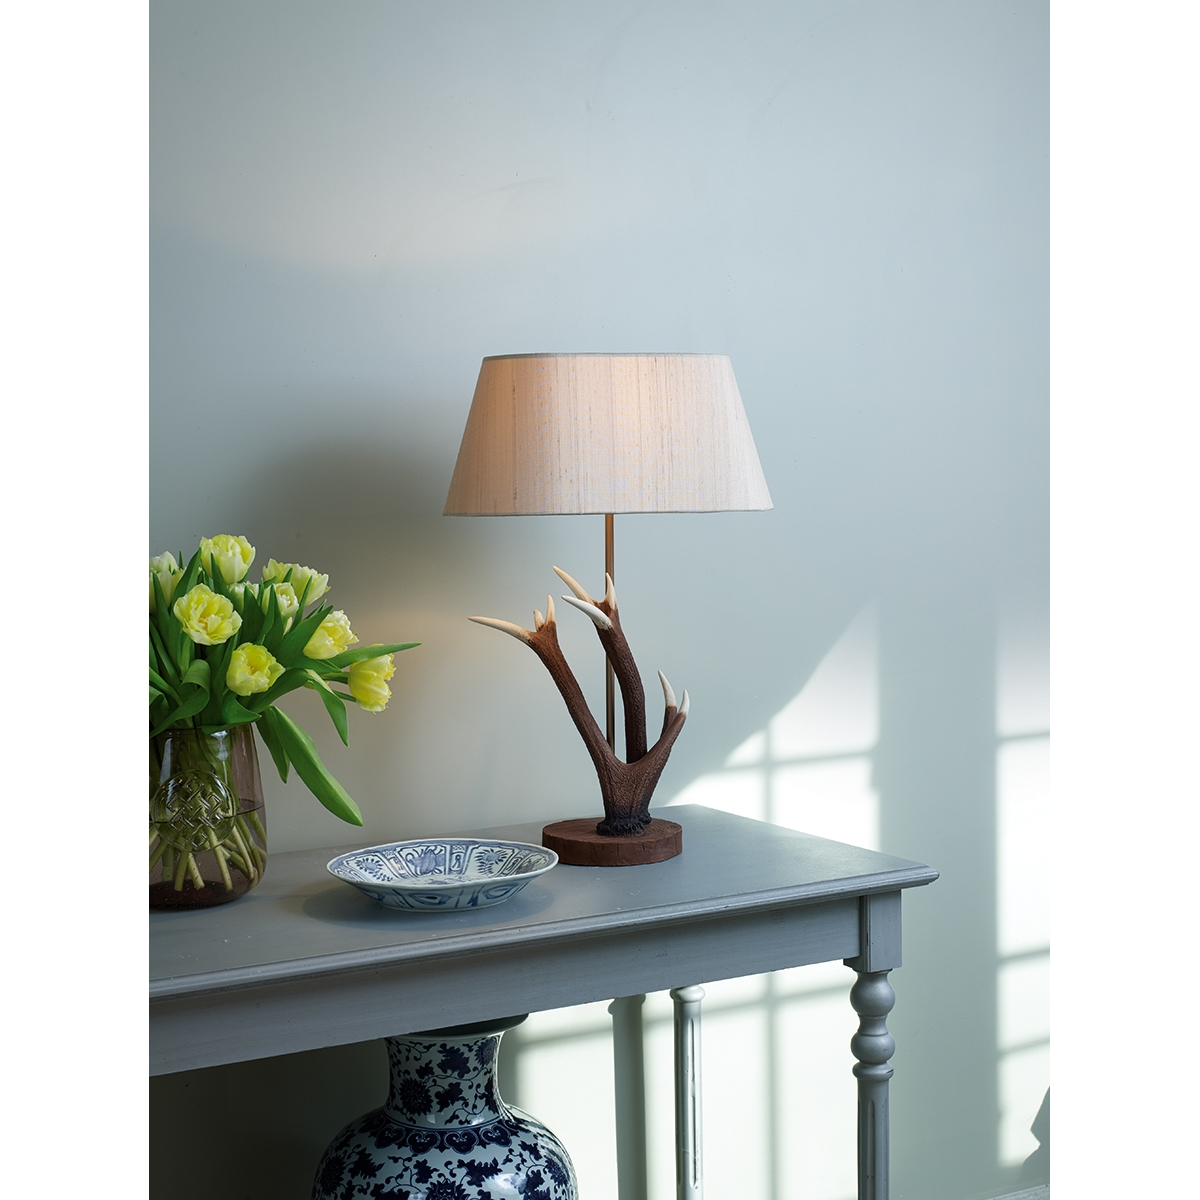 Rustic Floor Lamp With Table